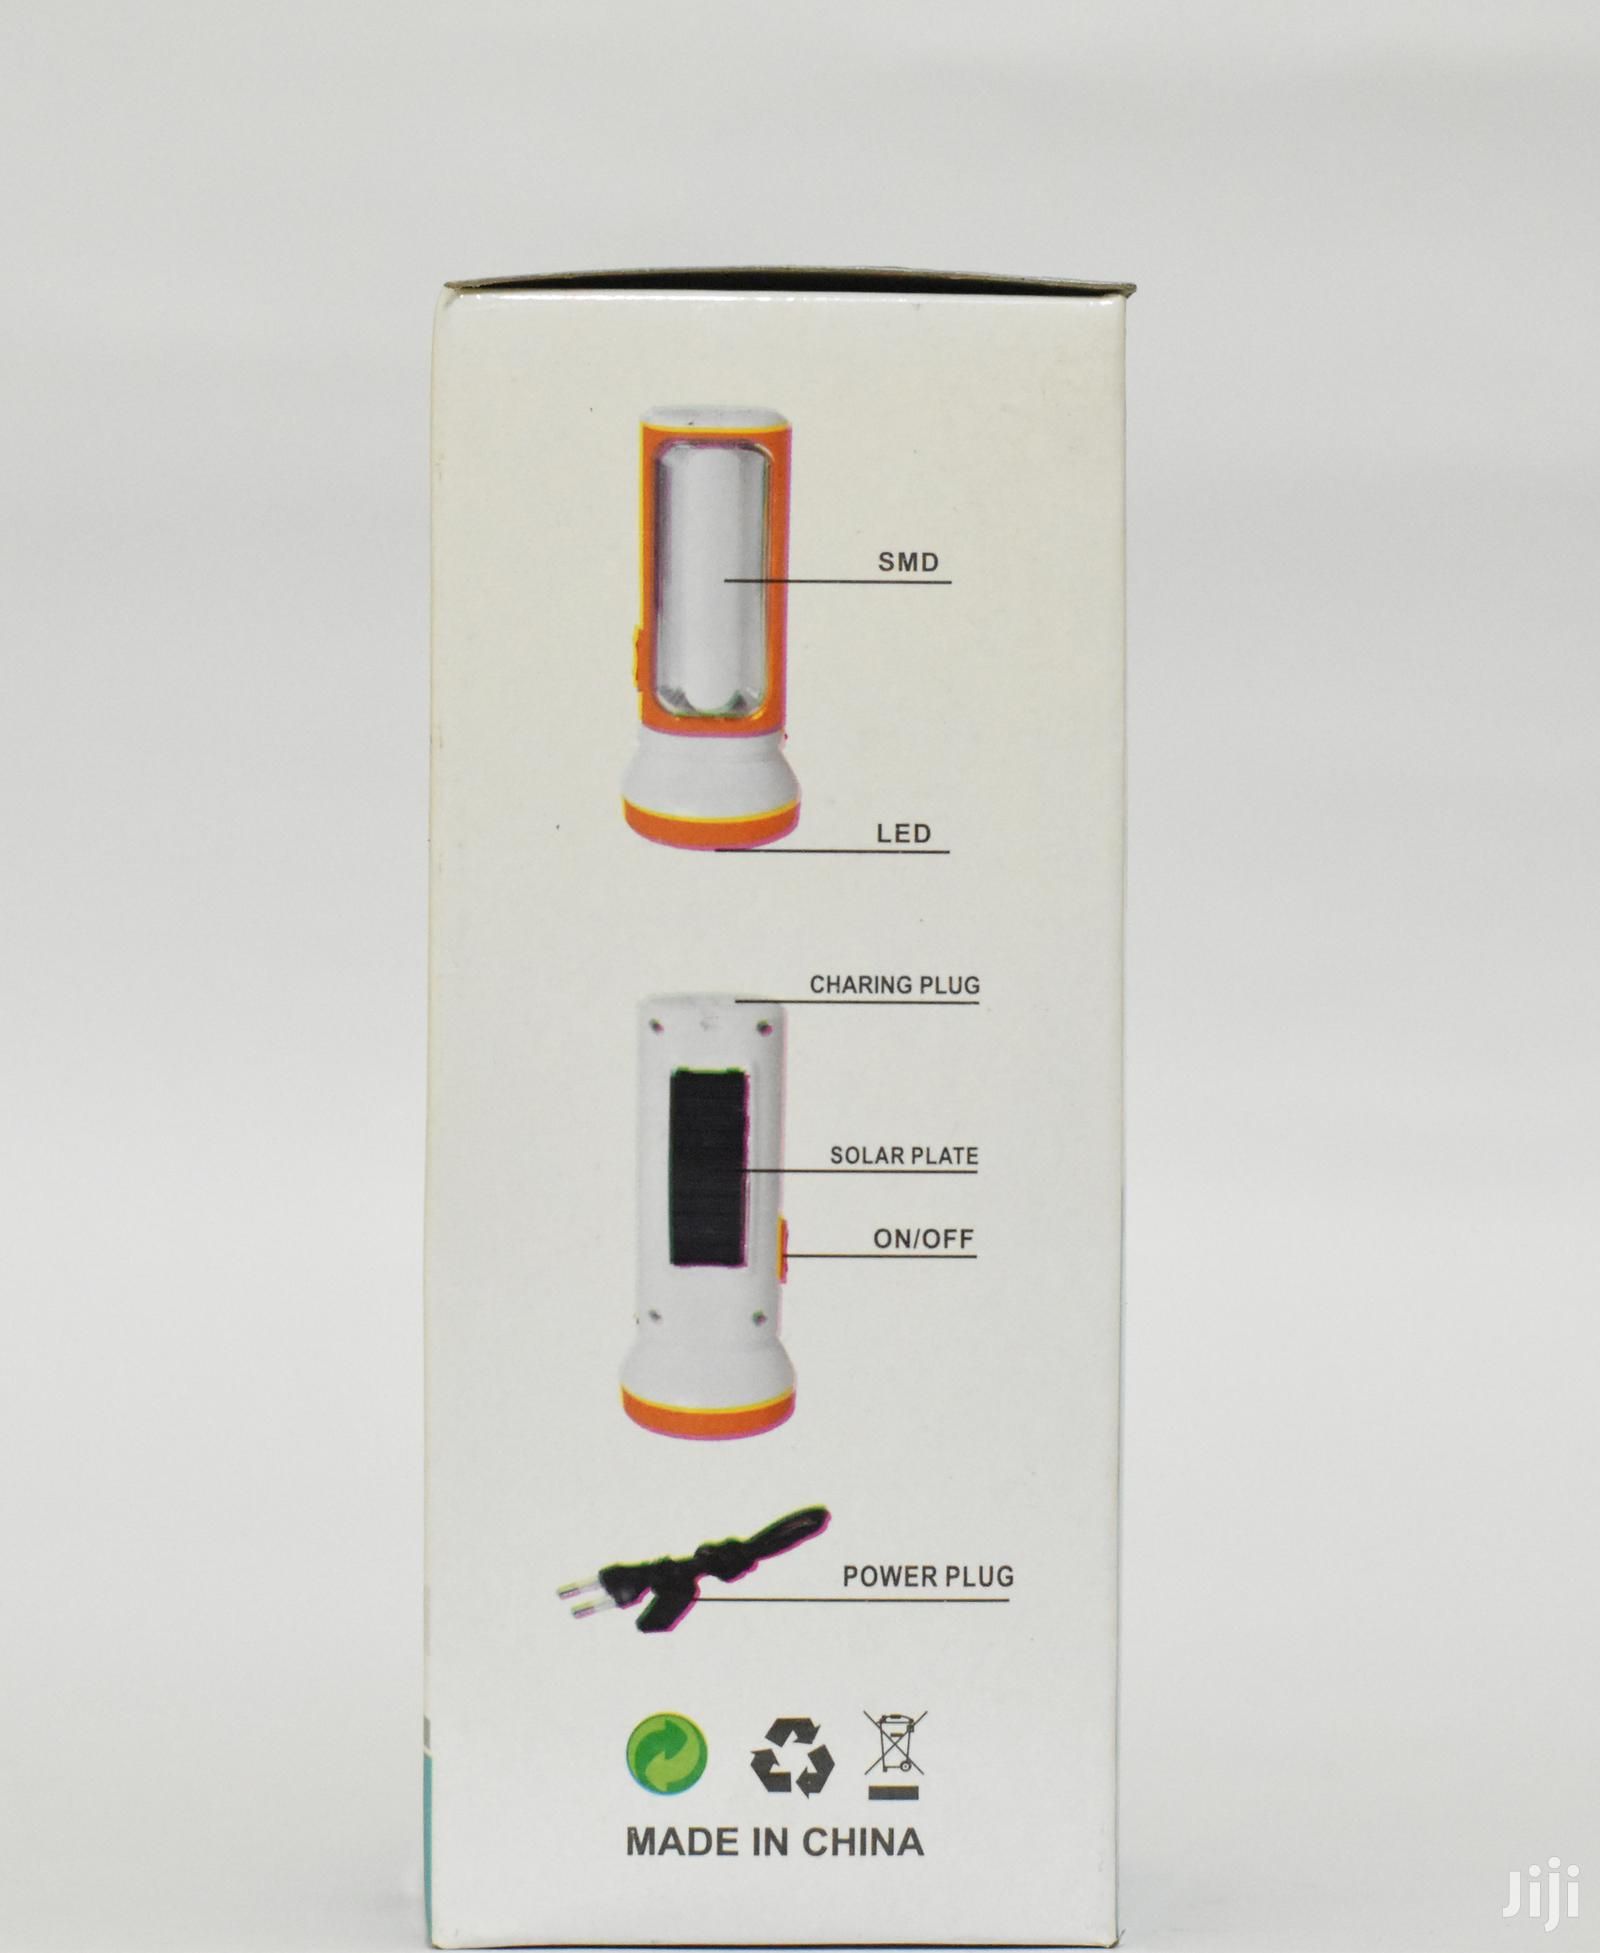 Rechargeable Led Torch | Home Accessories for sale in Nairobi Central, Nairobi, Kenya